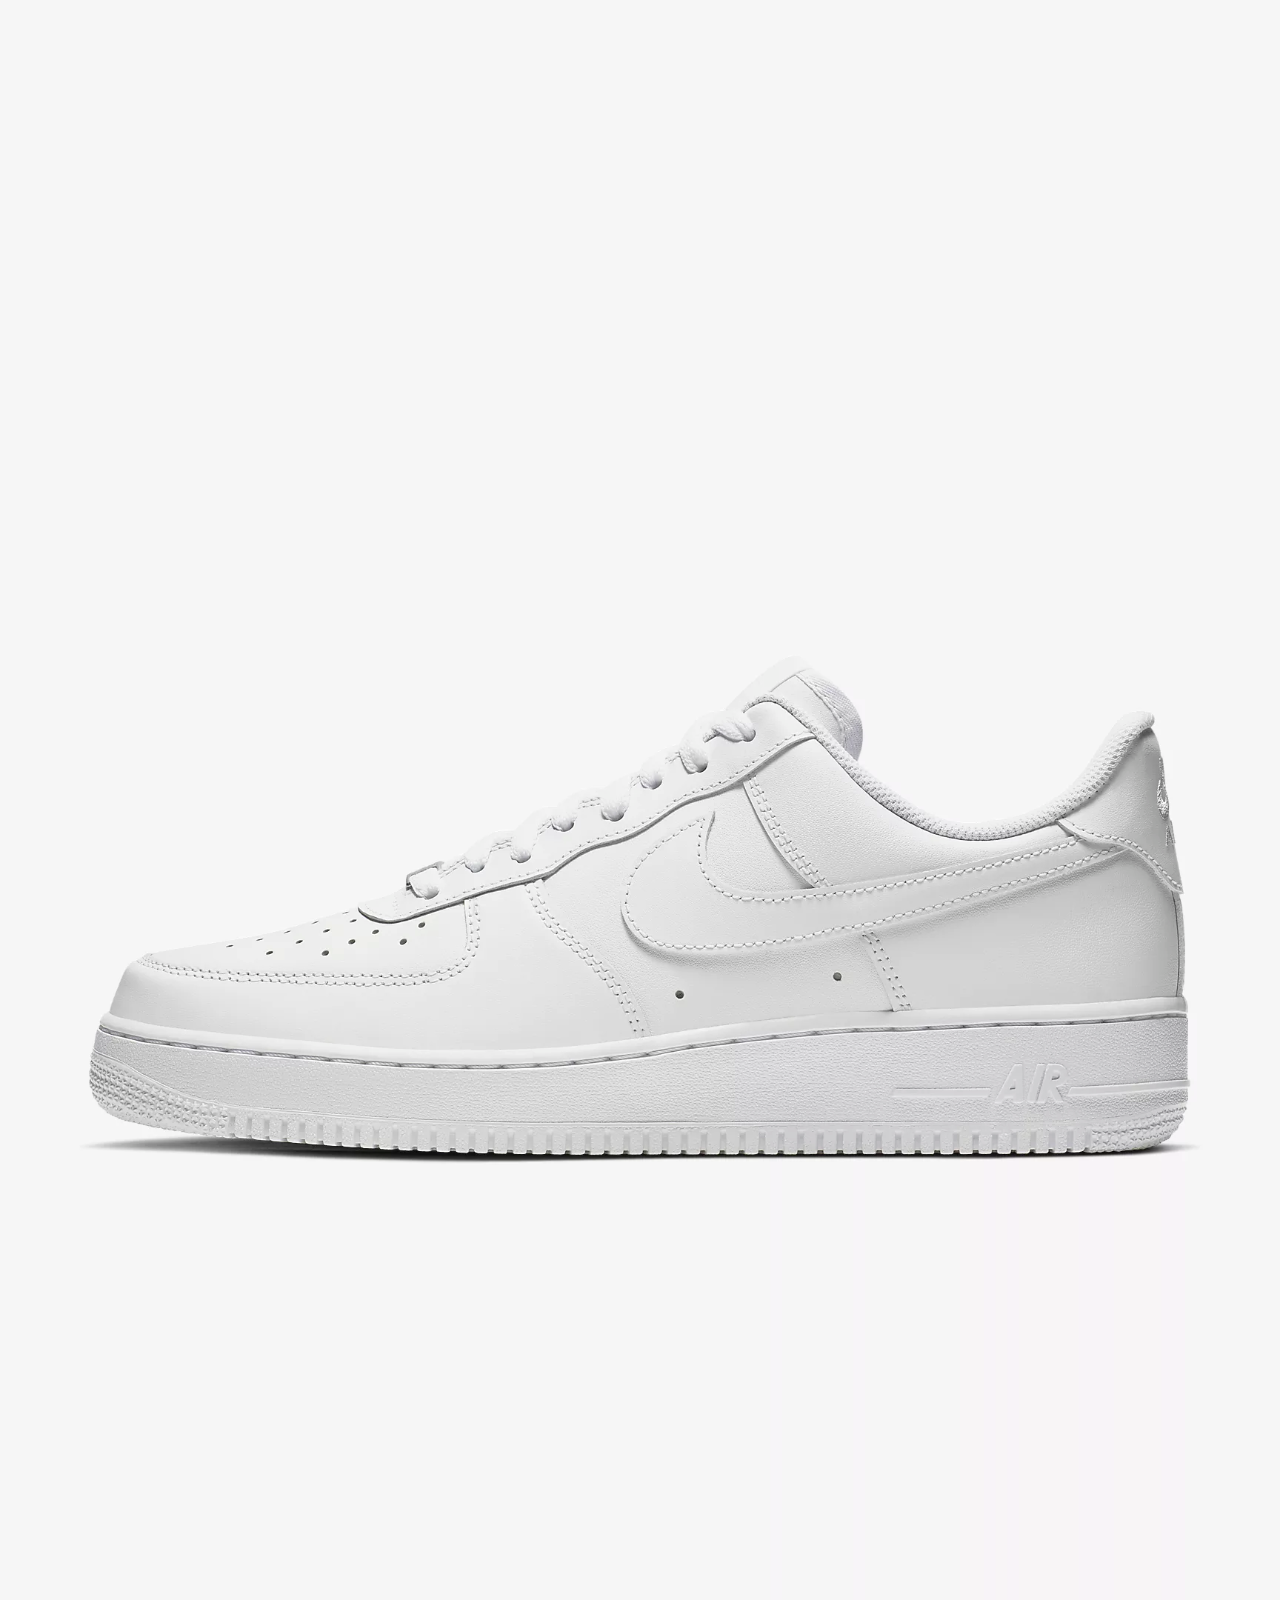 Nike Air Force 1 '07 Trainers White / Shoes / Leather Trainers